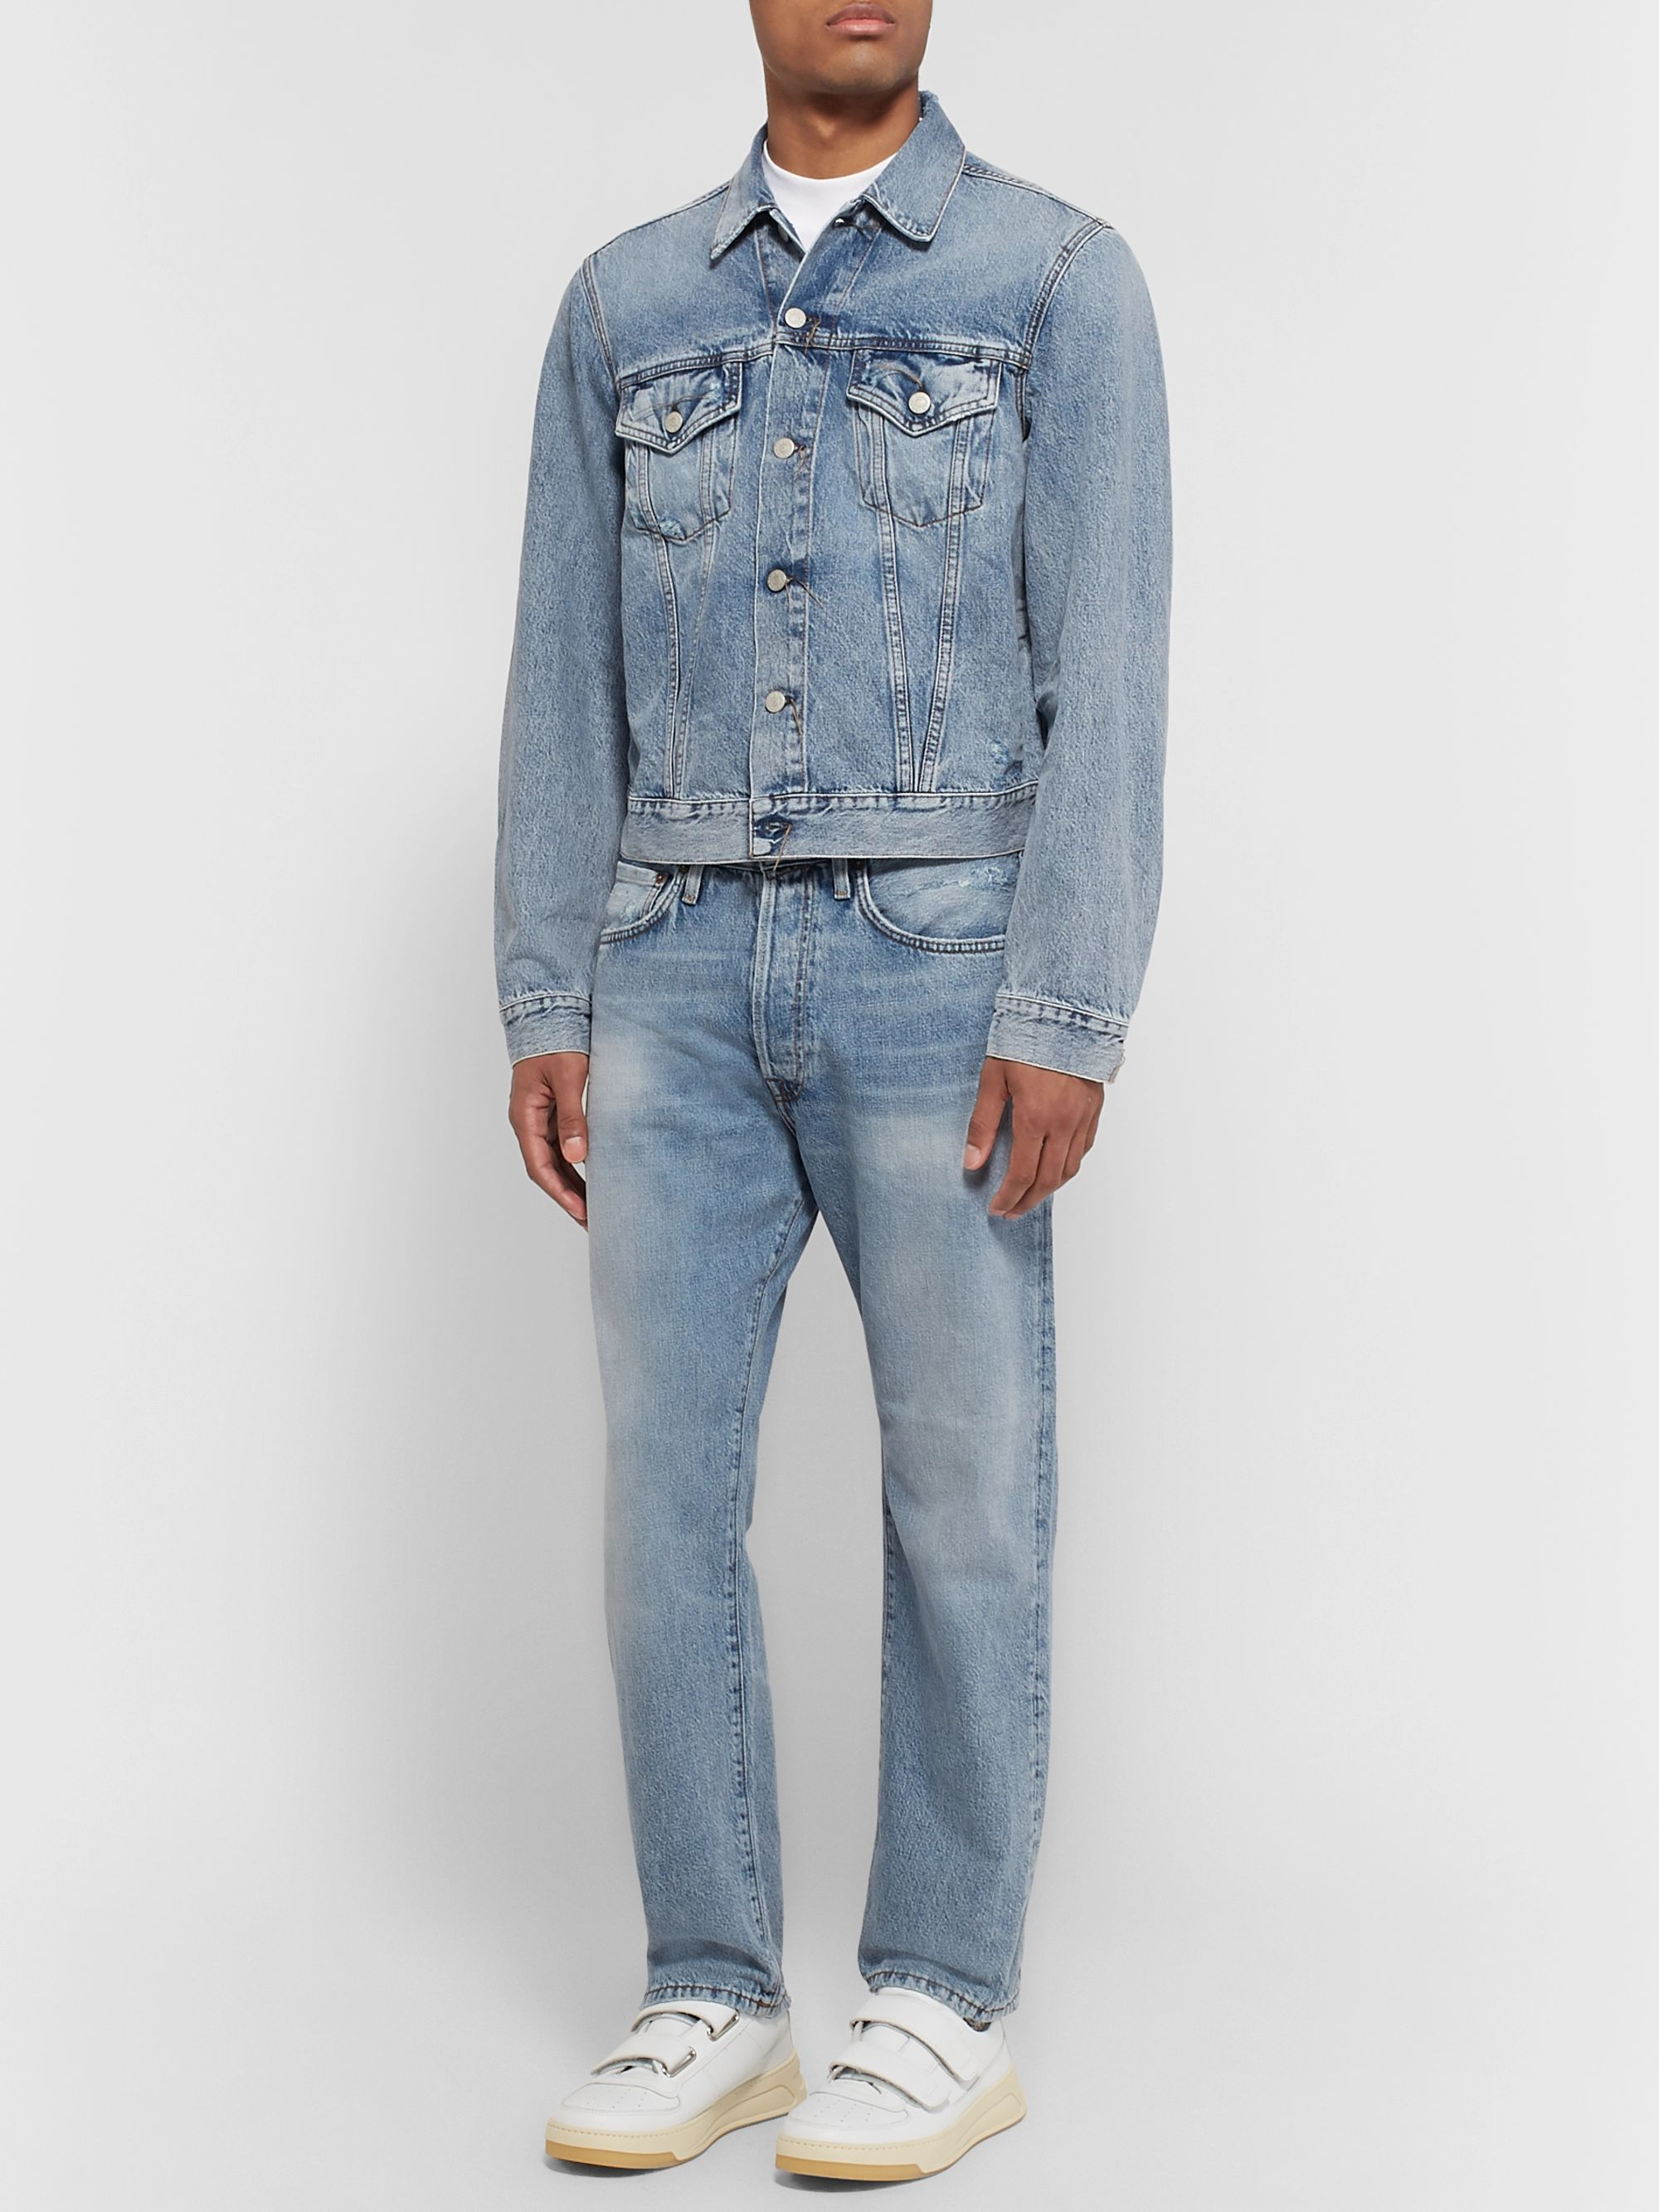 Acne Studios Distressed Denim Trucker Jacket